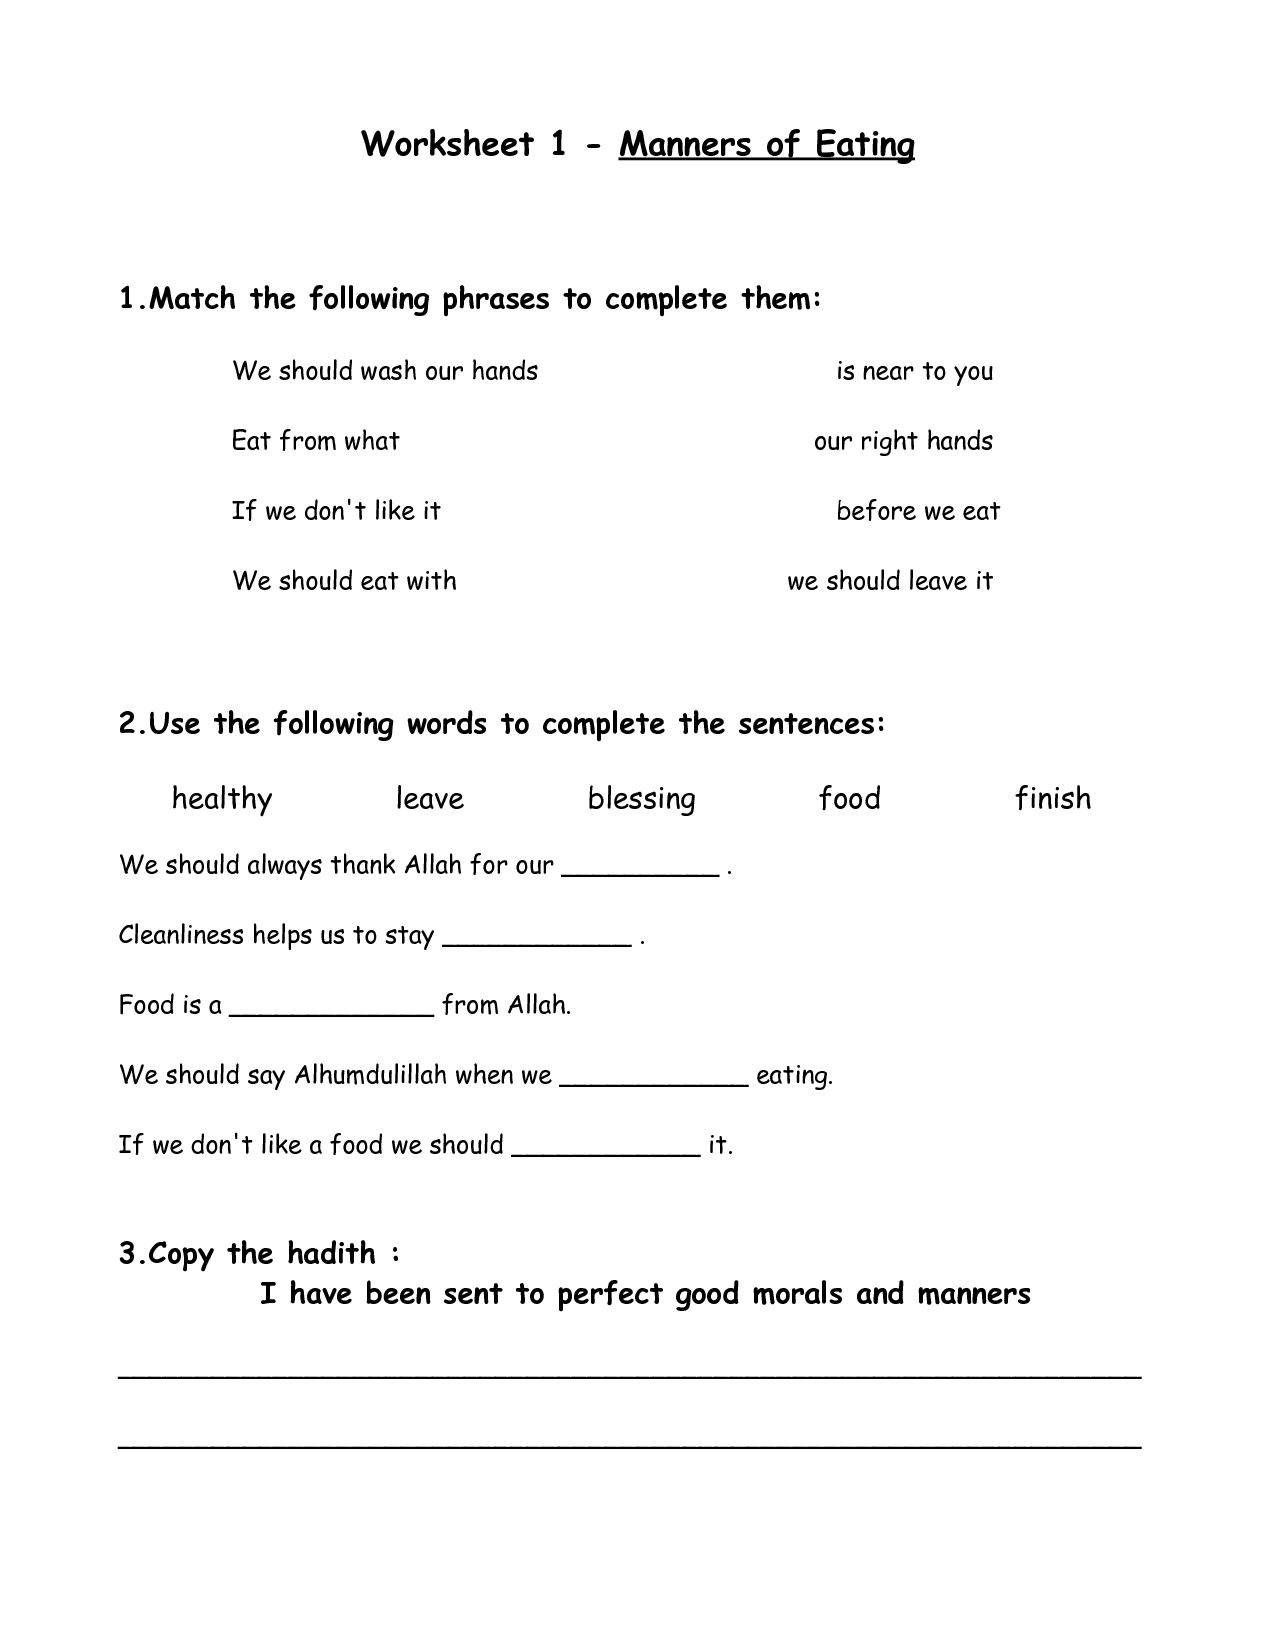 image relating to Free Printable Manners Worksheets called Desk Manners Printable Worksheets Worksheet 1 - Manners